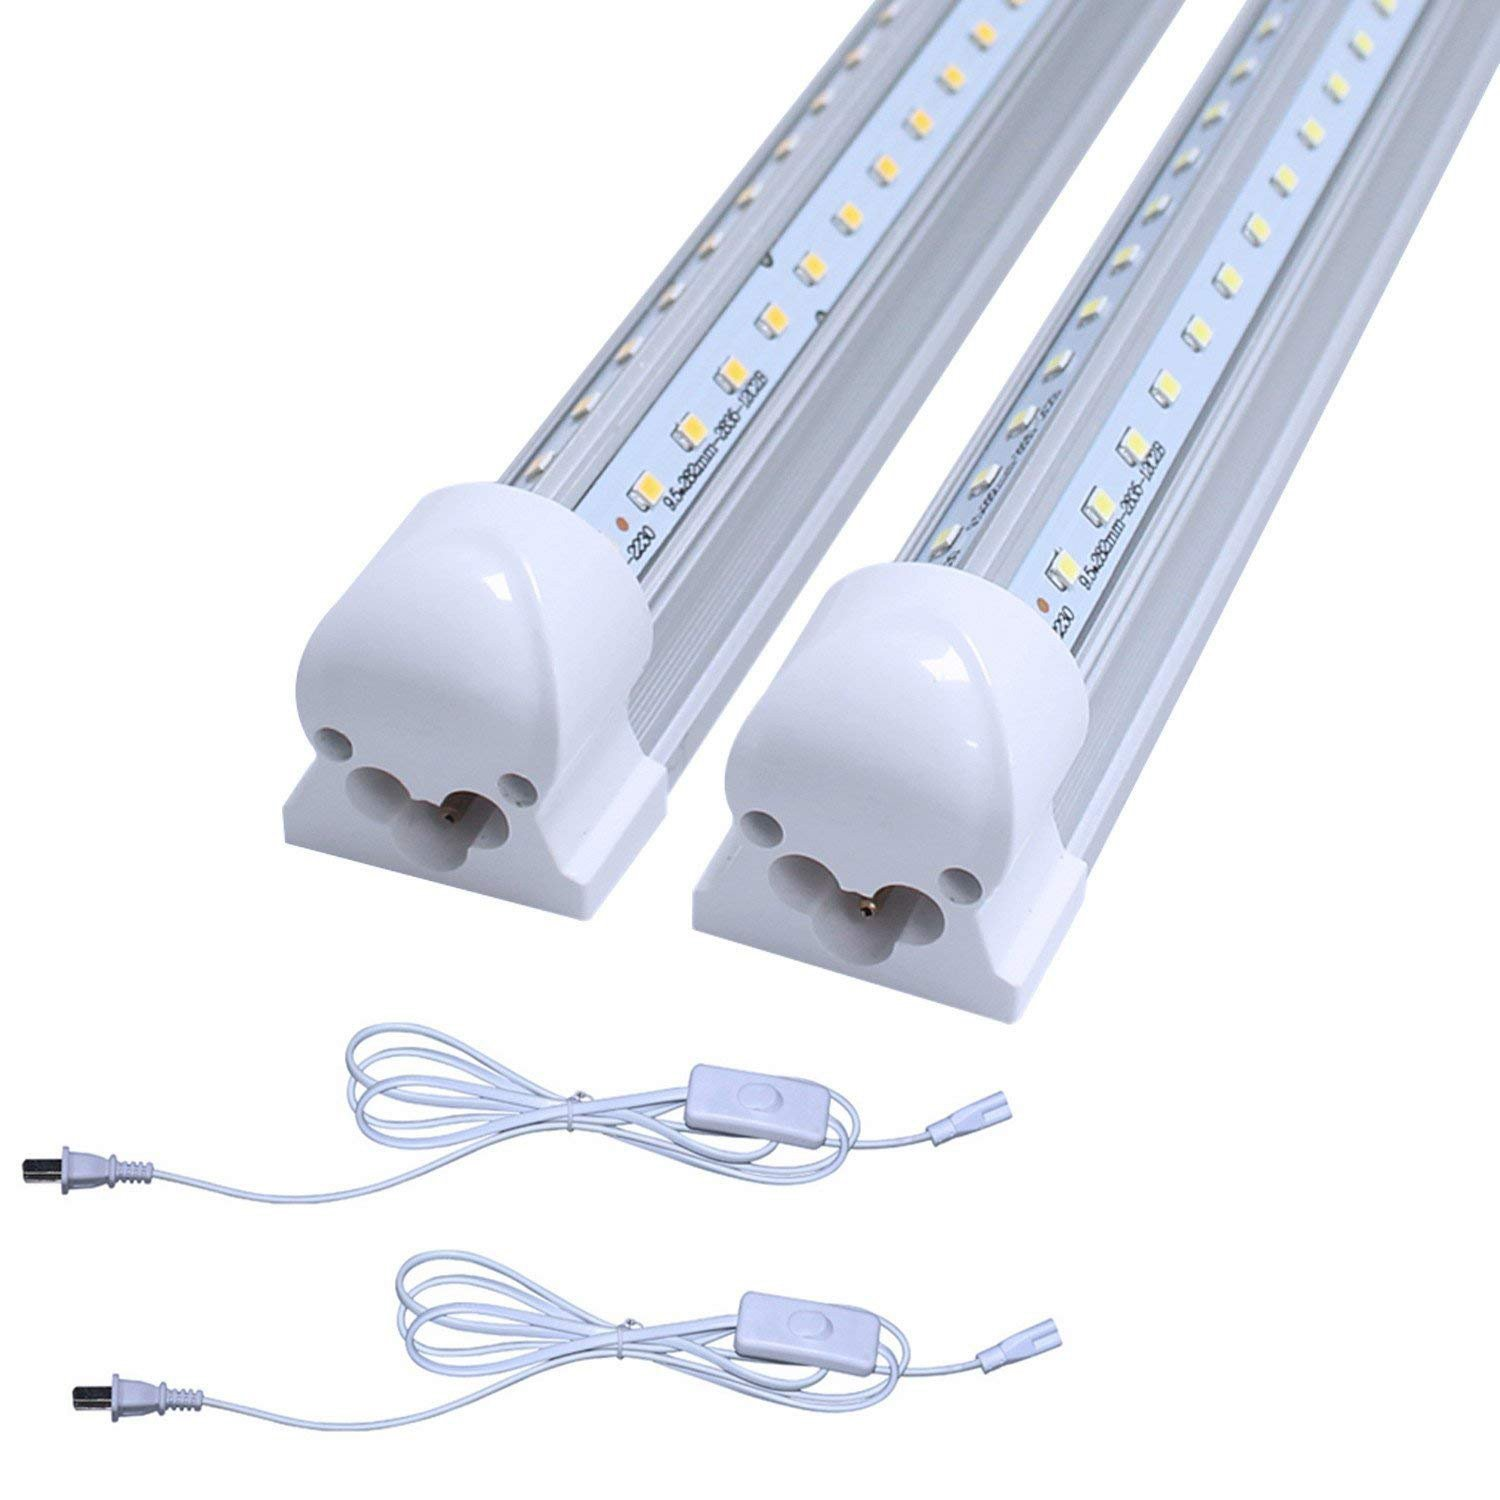 (Pack of 2) CNSUNWAY LED T8 V-Shape Integrated Single Fixture, 2FT, 1680lm, 6500k White, 14W, Utility Shop Light, Ceiling and Under Cabinet Light, Corded Electric with Built-in ON/Off Switch